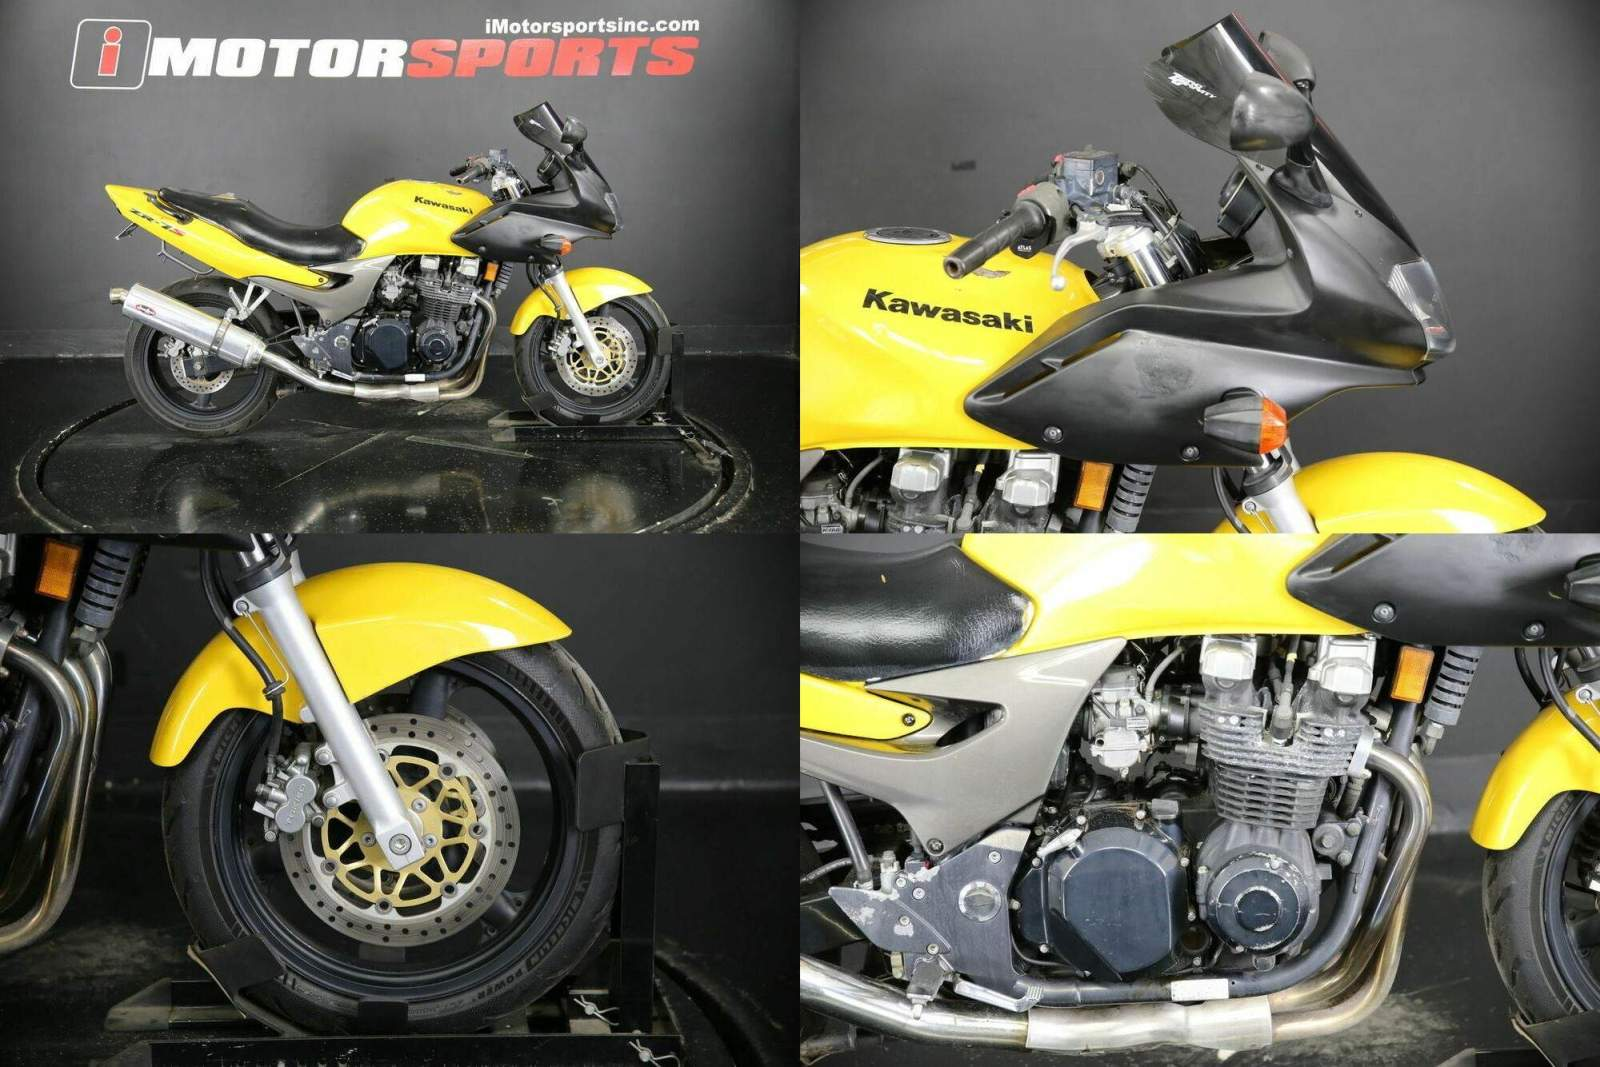 2003 Kawasaki ZR7-S Yellow used for sale near me